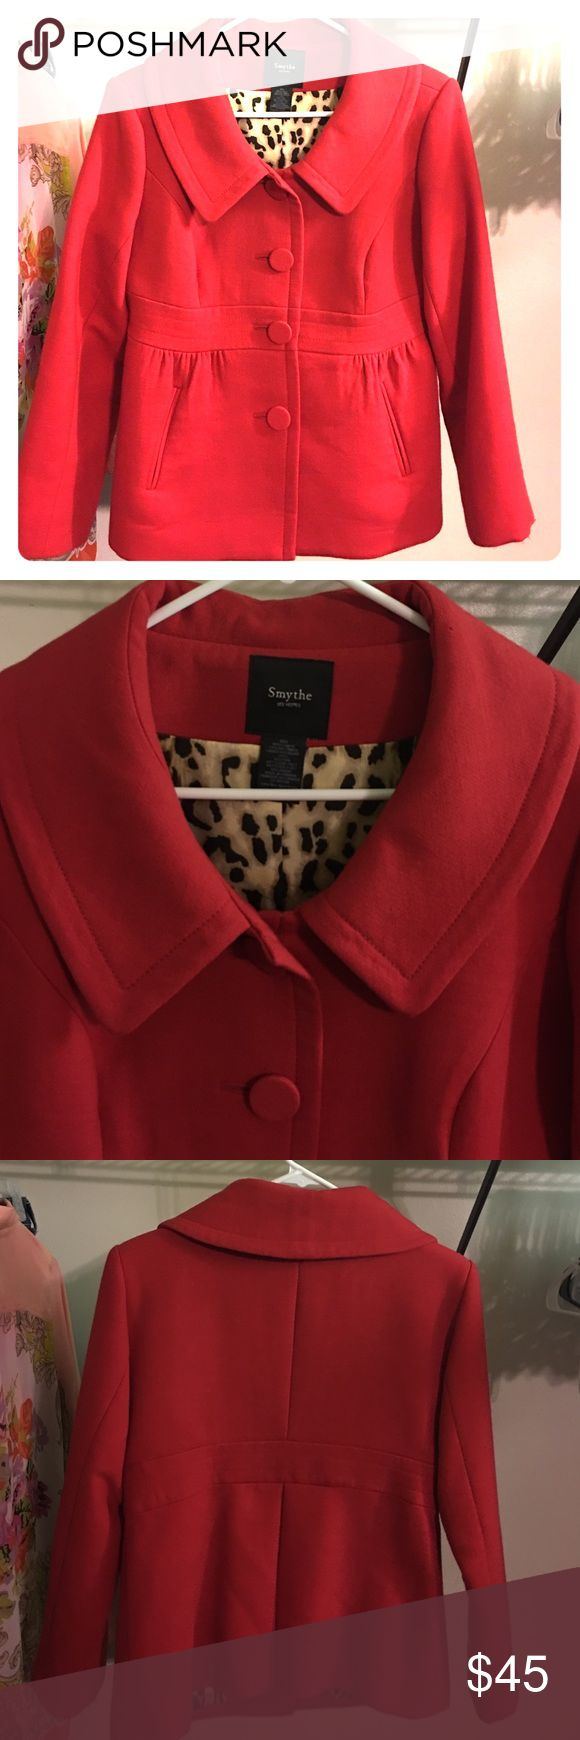 Red Pea Coat Single breasted, says size 10 and fits like a medium, very cozy and chic! Smythe Jackets & Coats Pea Coats